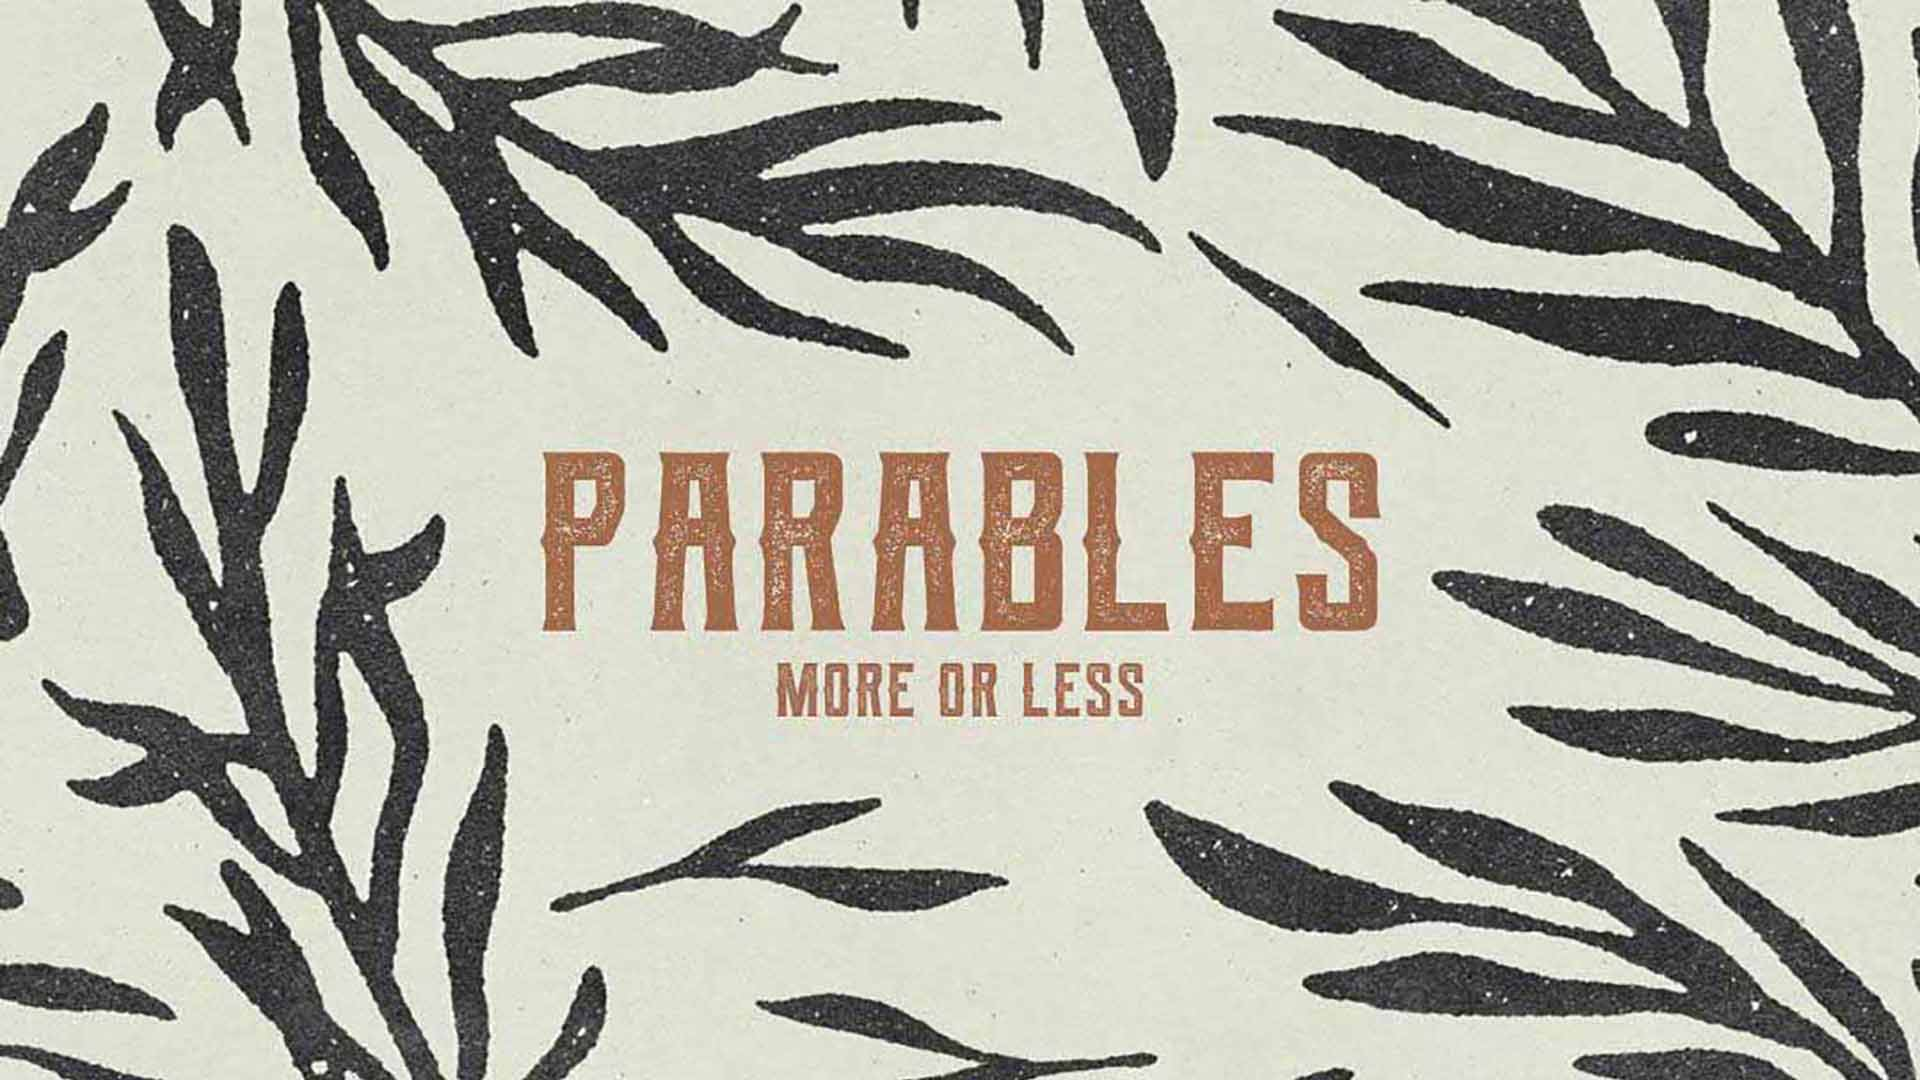 Series: Parables: More or Less